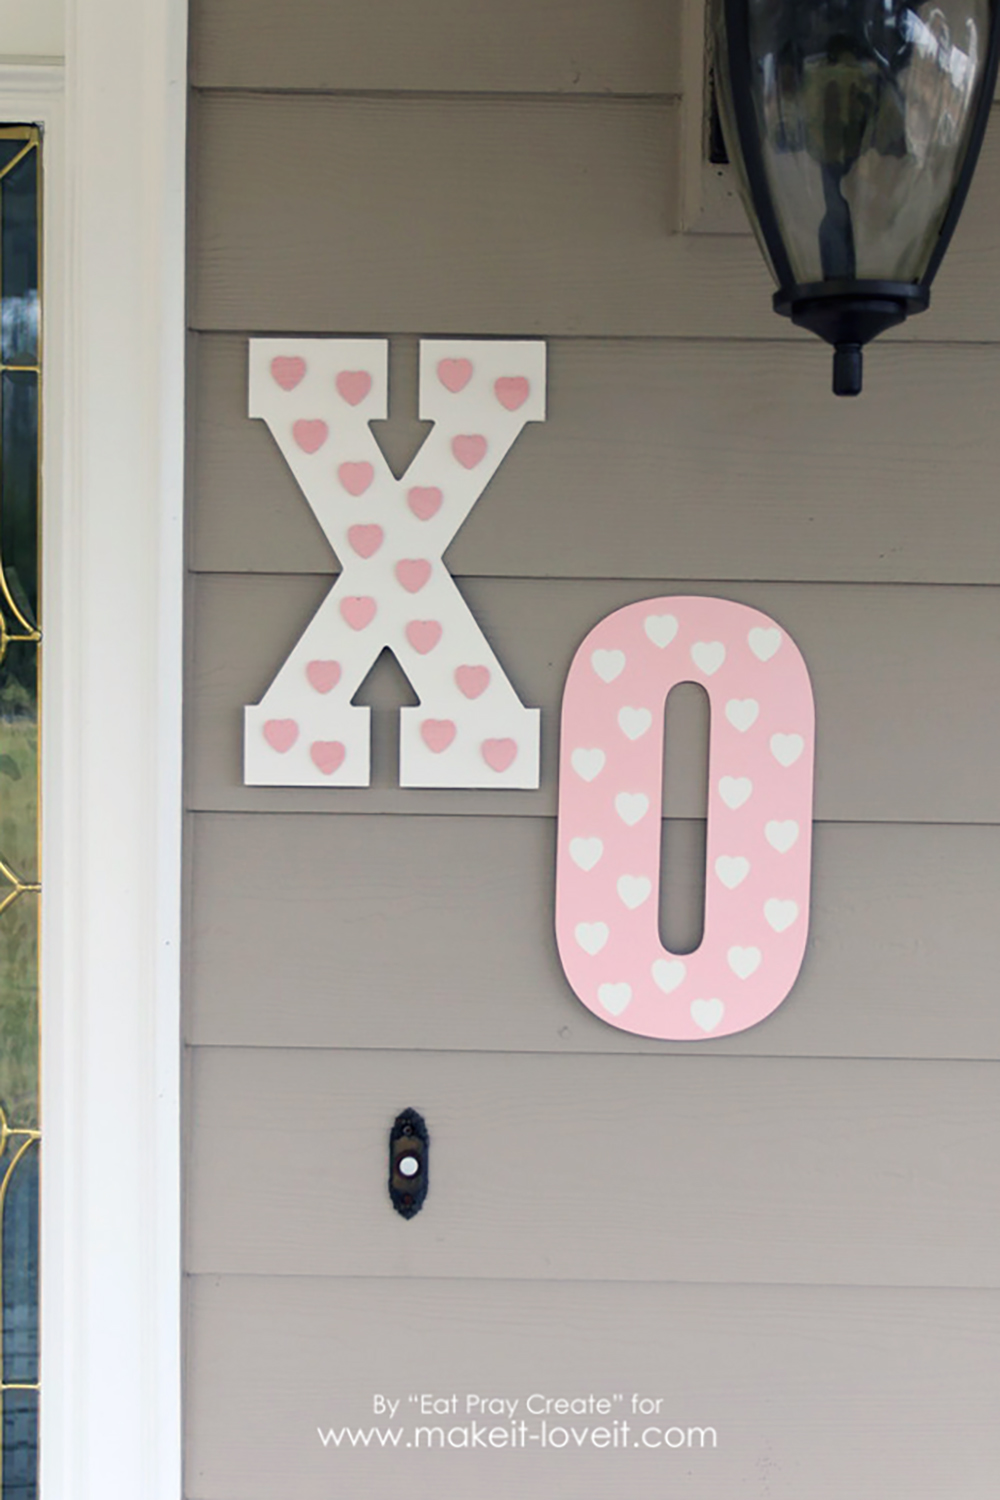 39 Xo 39 Valentine Home Decor Tutorial Make It And Love It